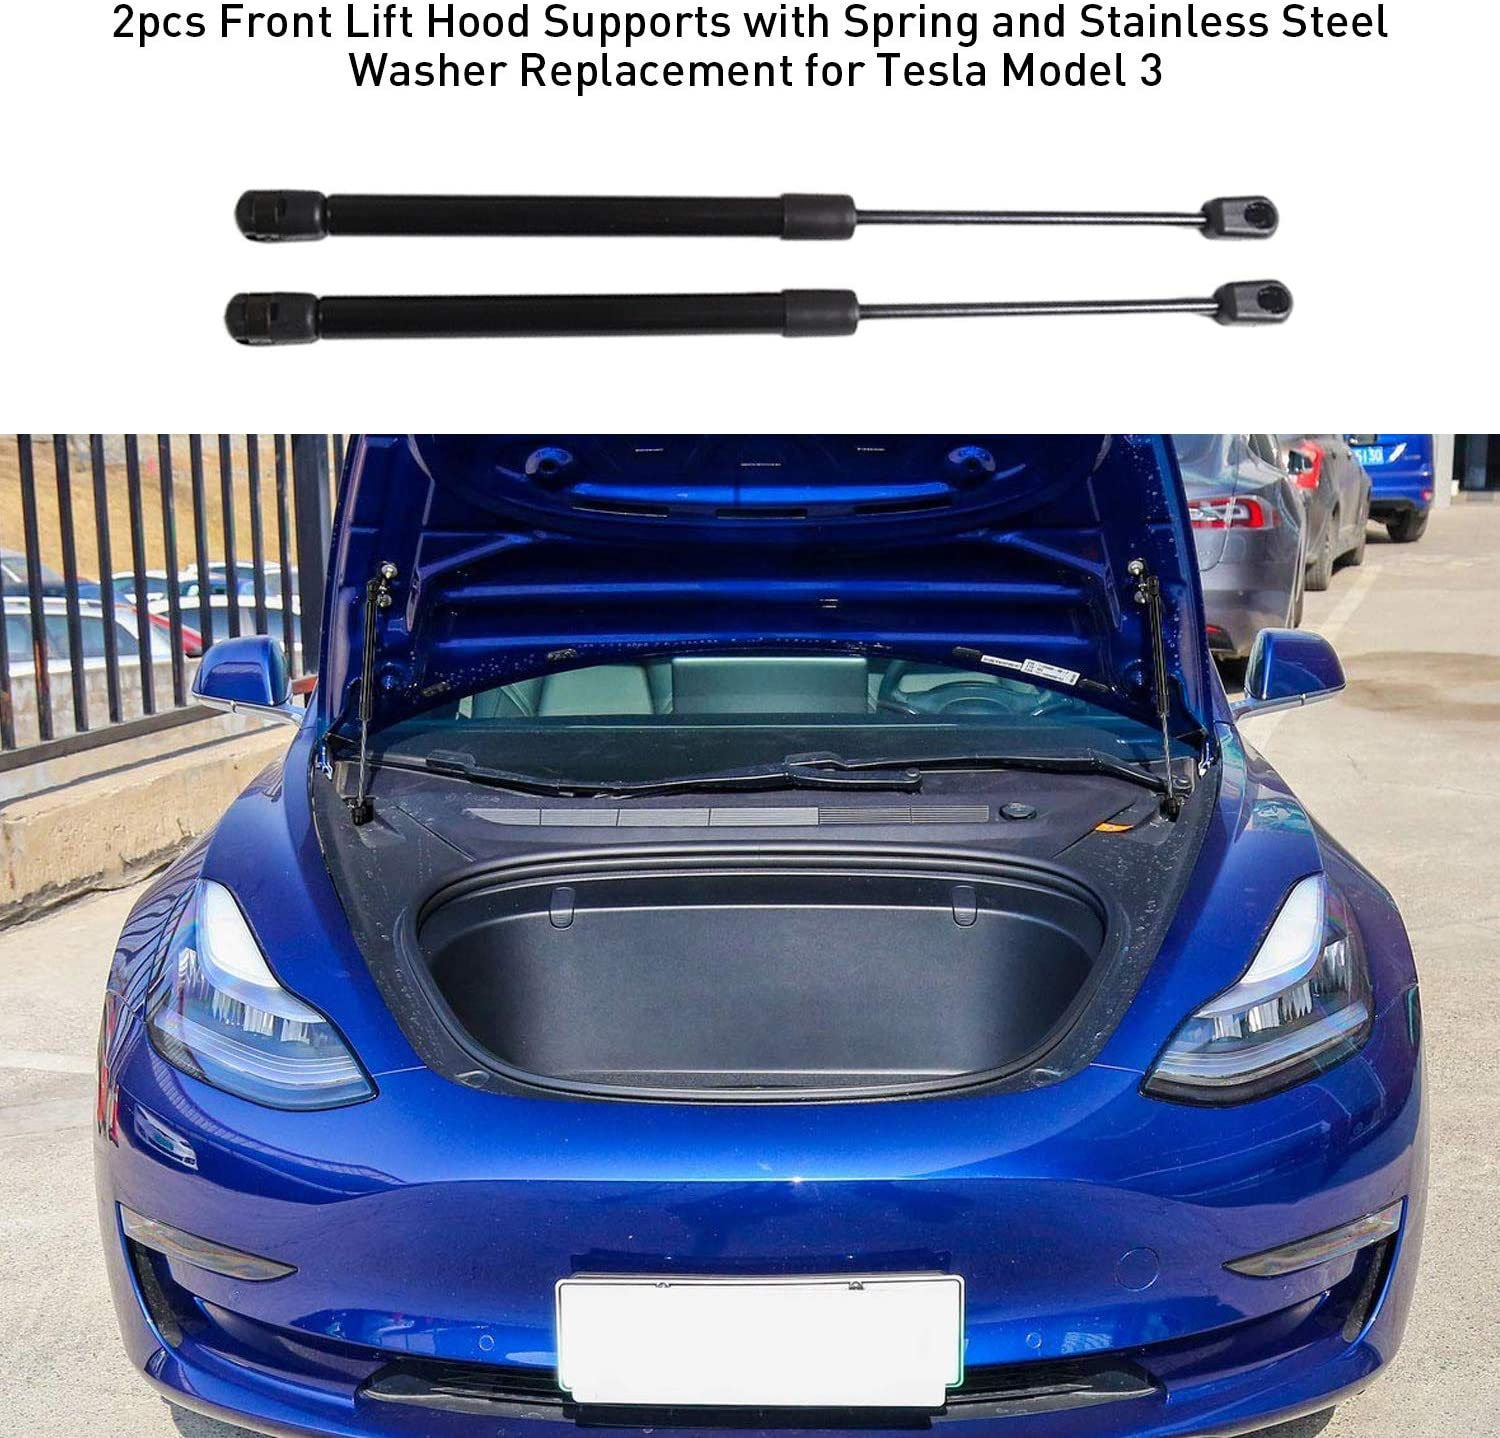 Front Lift Hood Supports for Tesla Model 3